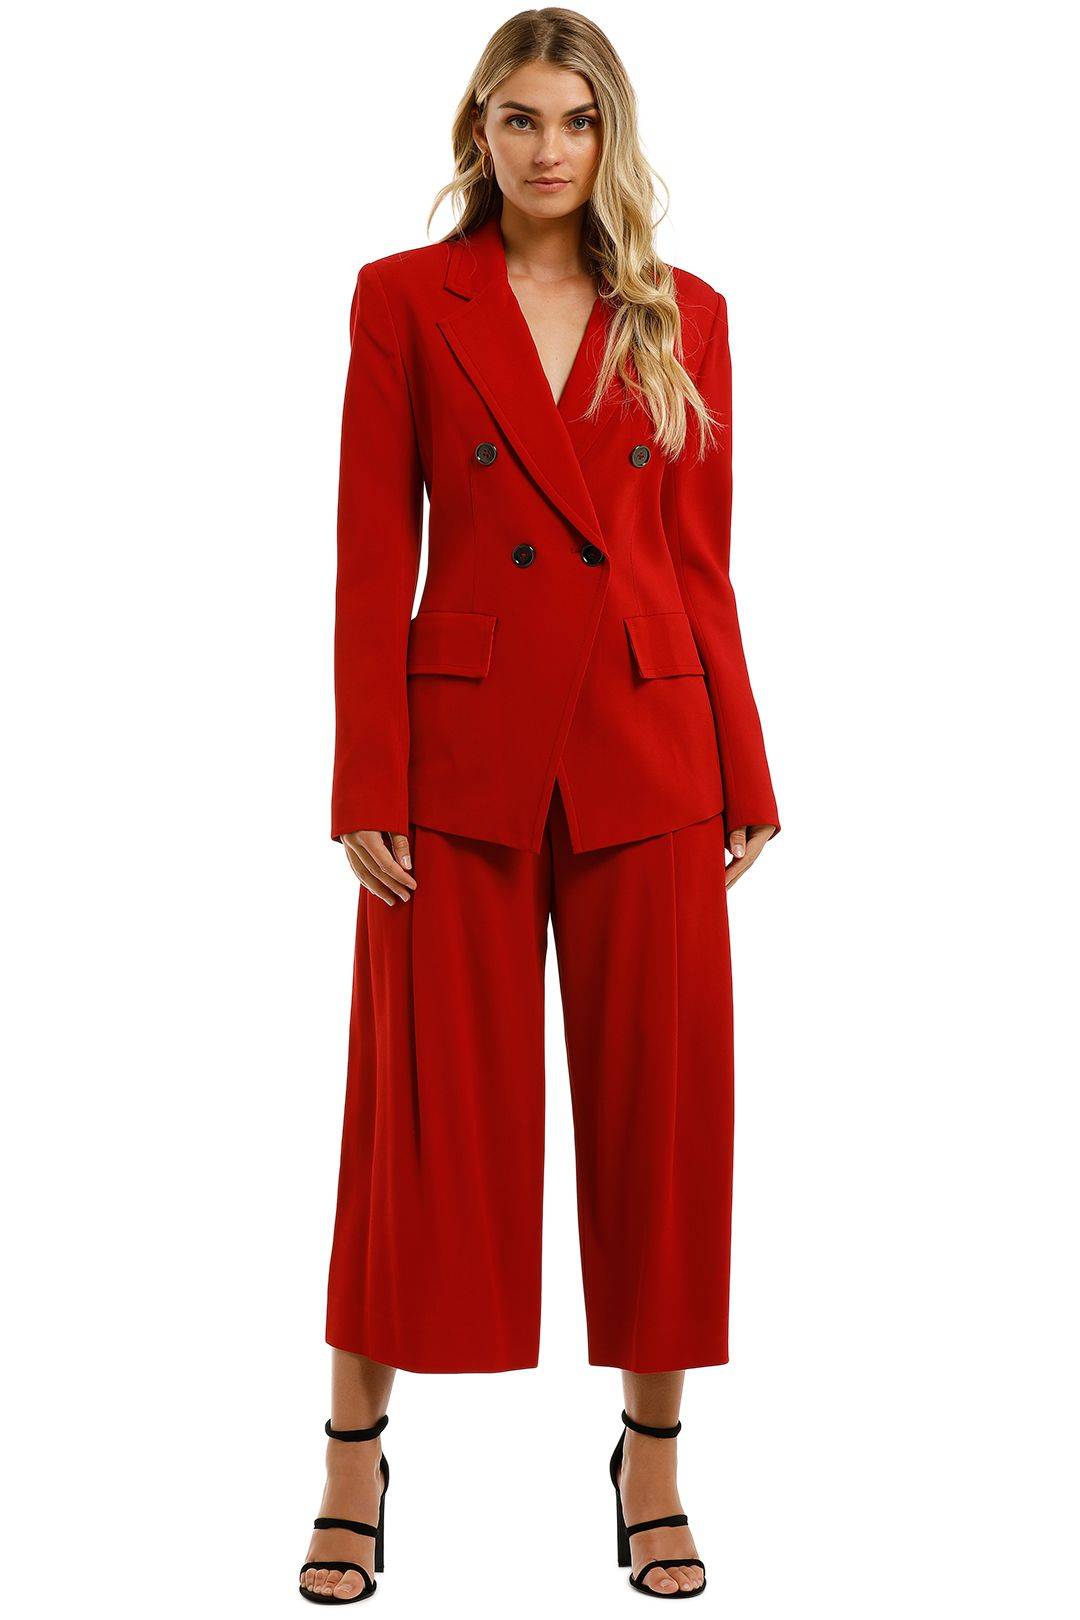 Ginger-and-Smart-Equinox-Jacket-and-Pant-Set-Scarlet-Red-Front